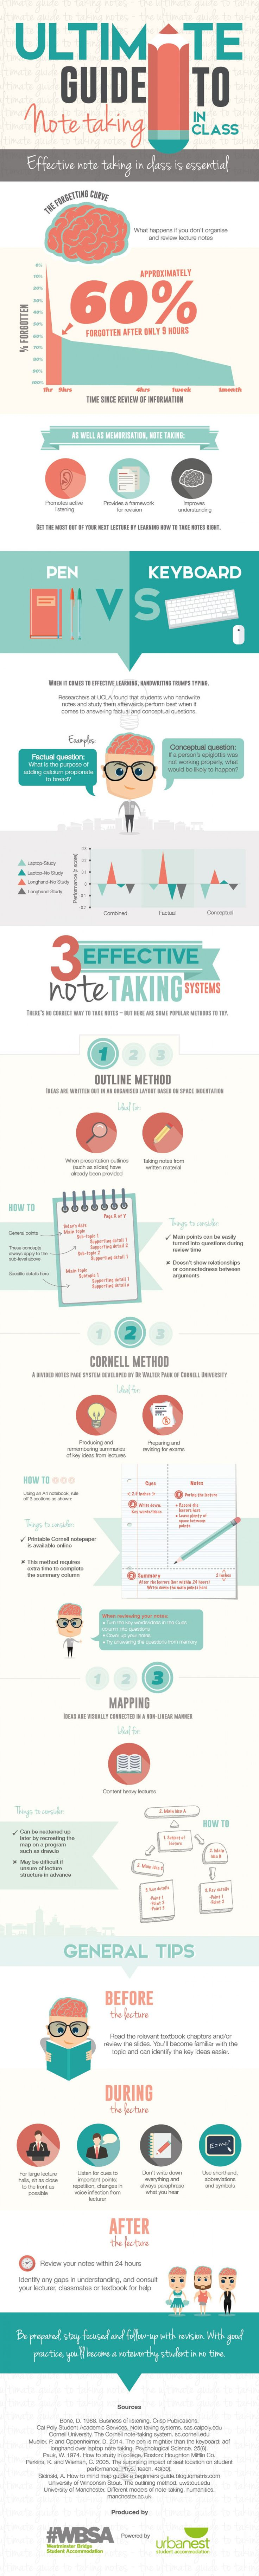 Ultimate Guide to Note Taking in Class Infographic